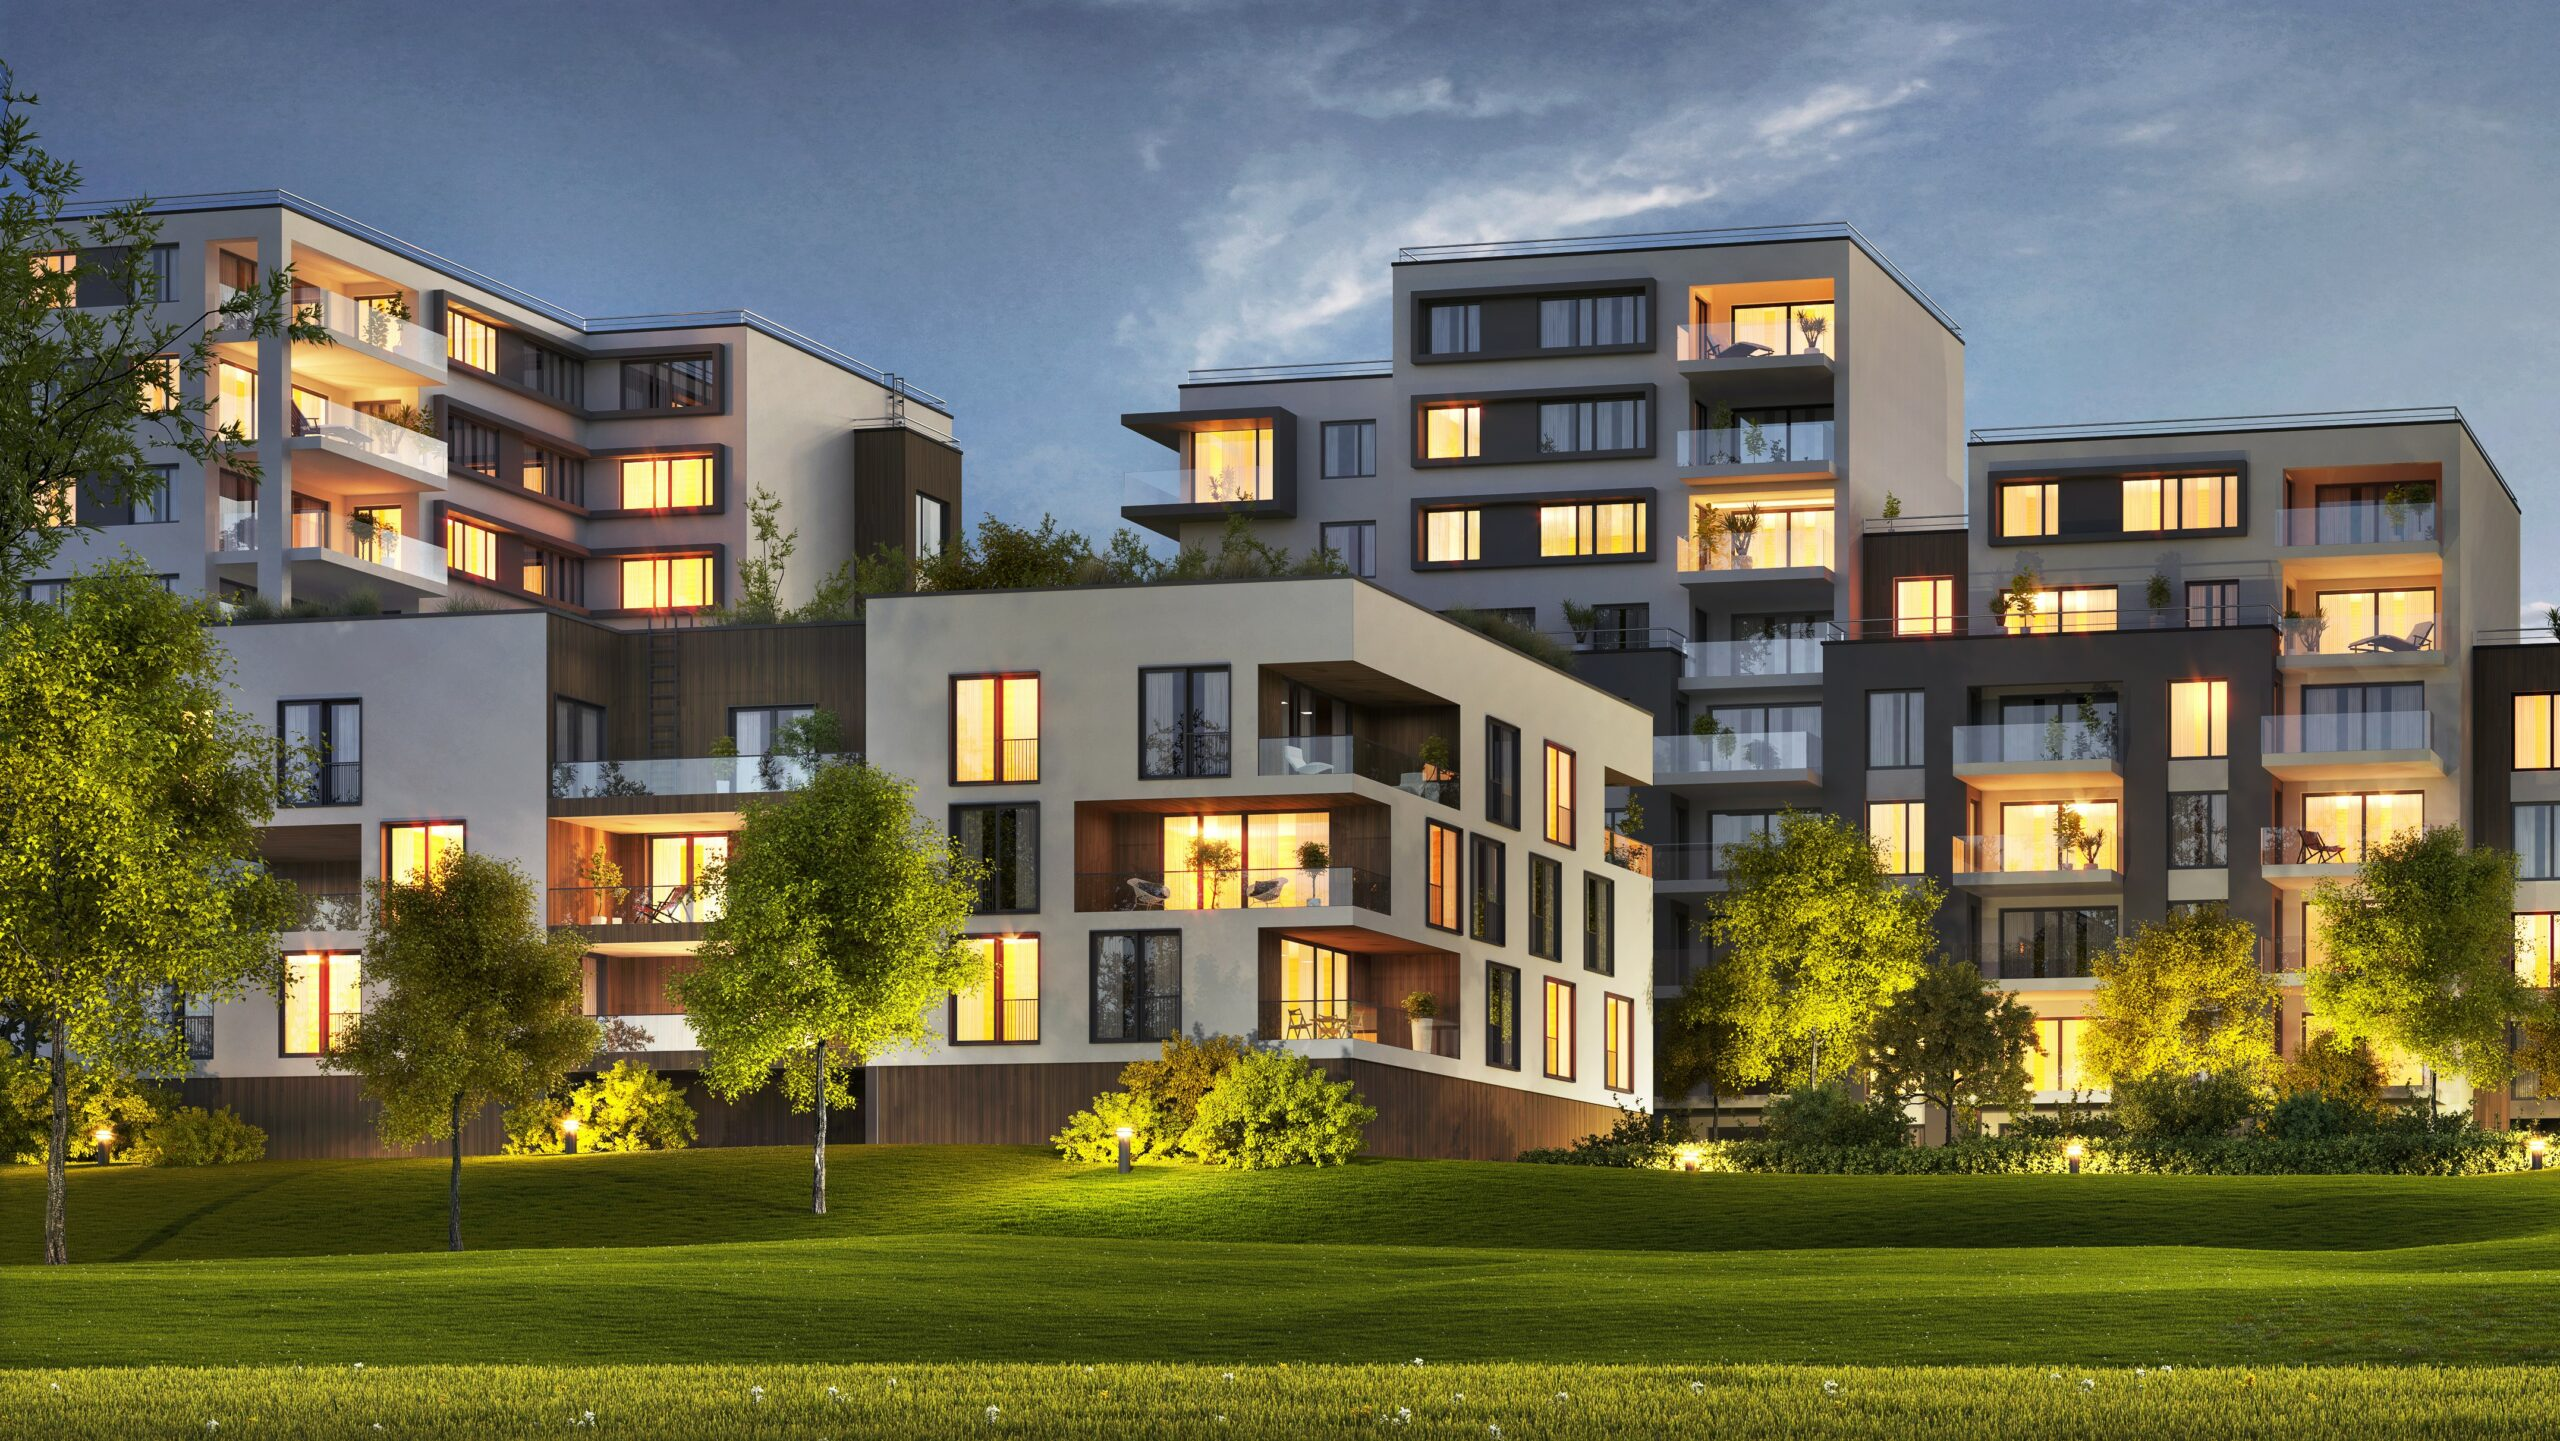 Scenic Night View Of Modern Architecture Of Residential Buildings